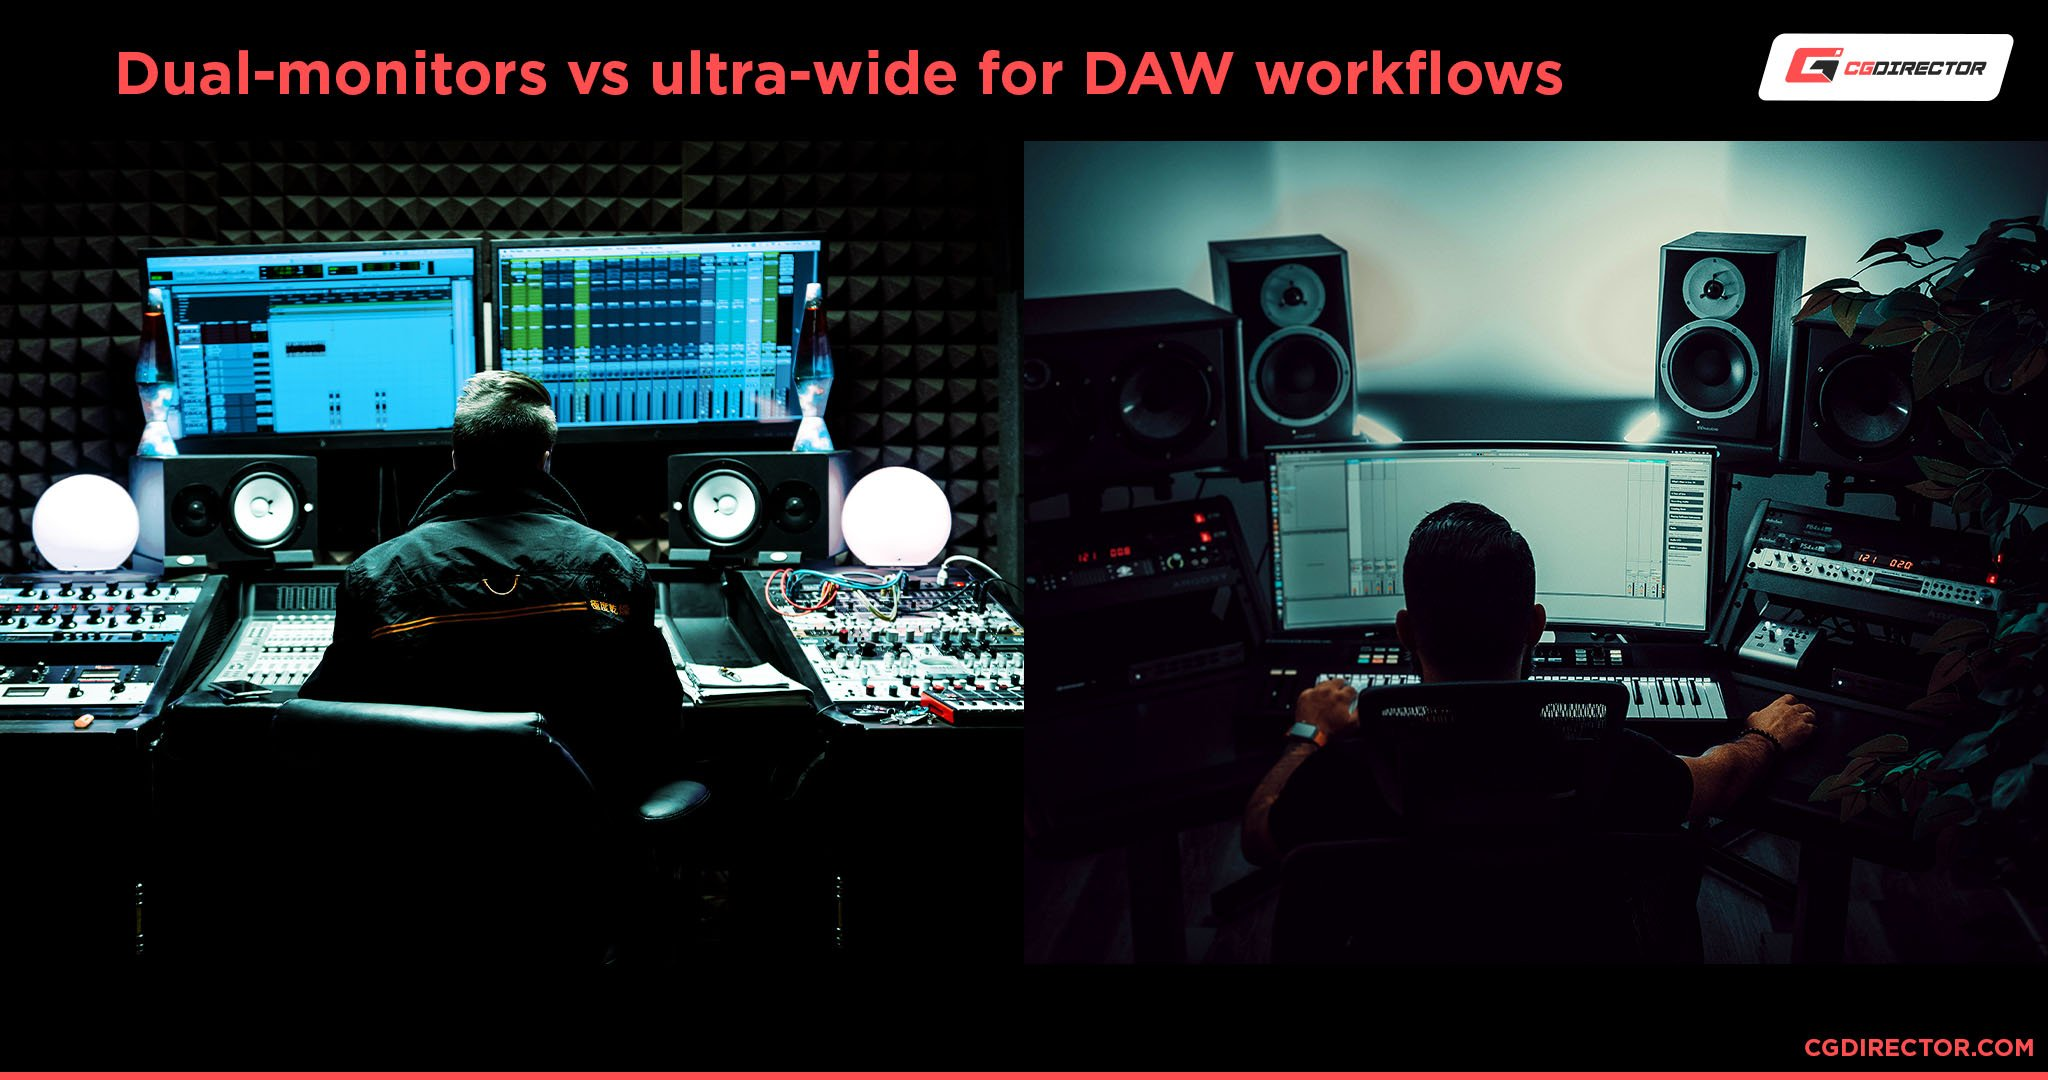 Dual-monitors vs ultra-wide for DAW workflows